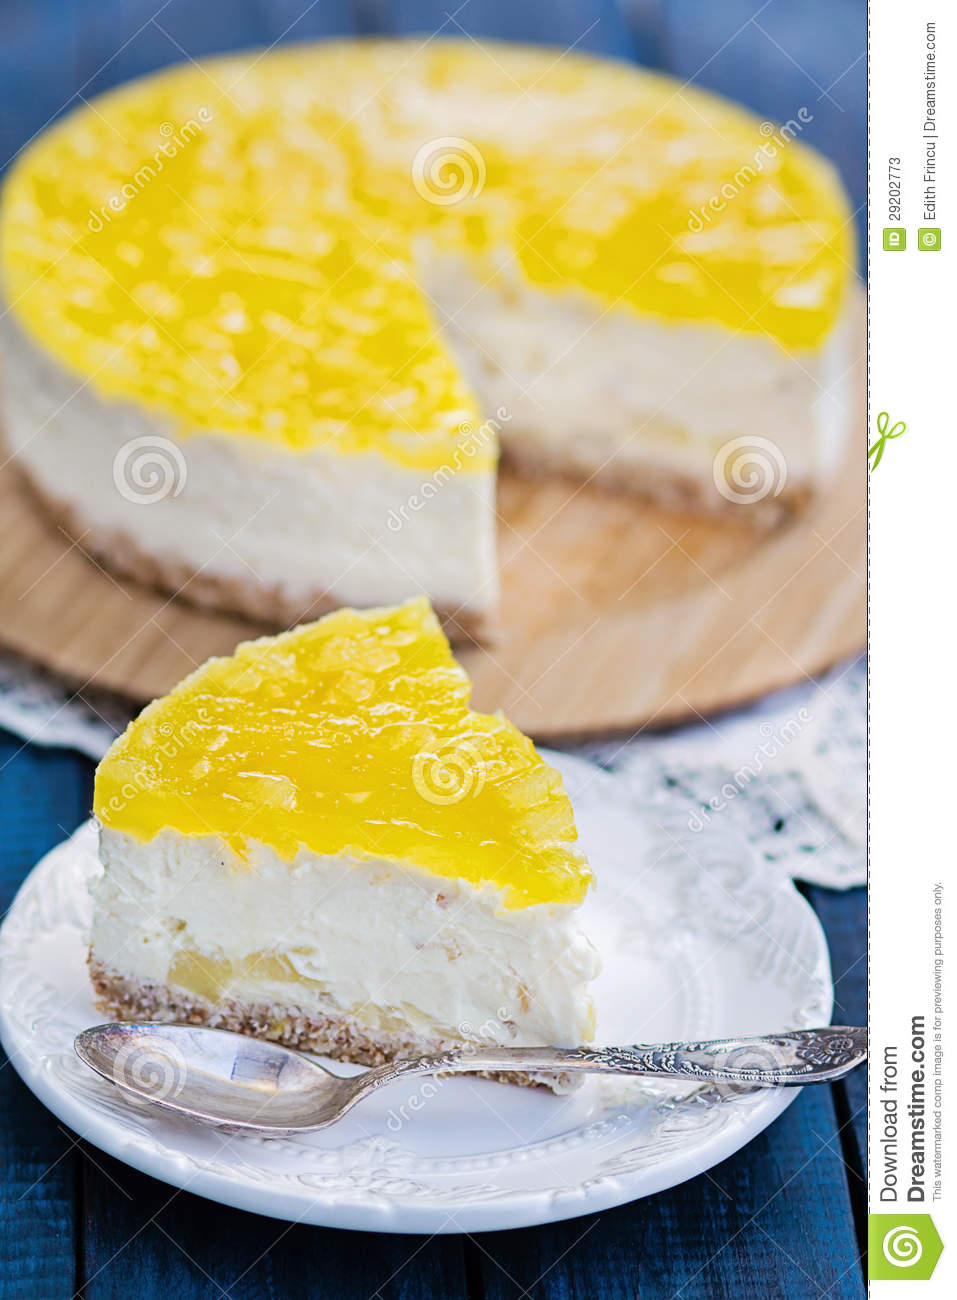 Bake Pineapple Cake